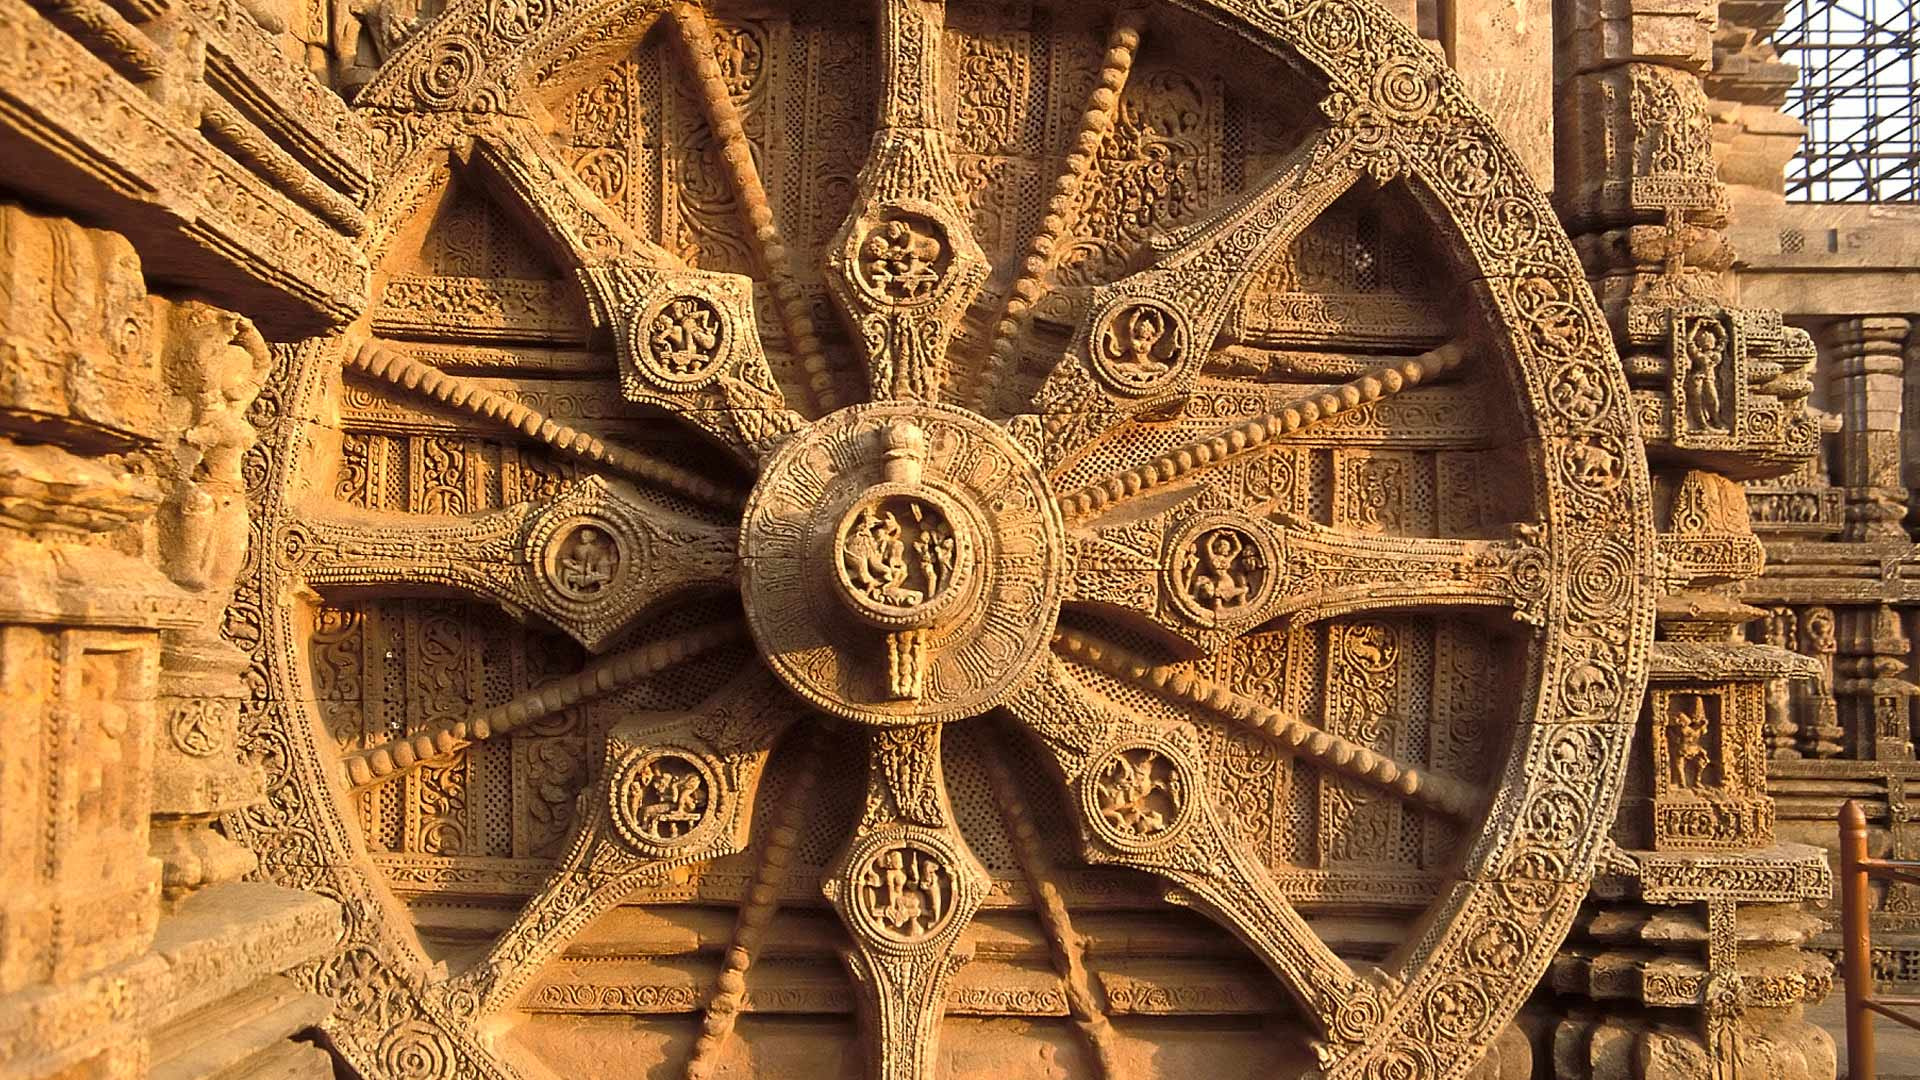 Detail of a Stone Chariot Wheel at the Sun Temple, Konark, Orissa, India